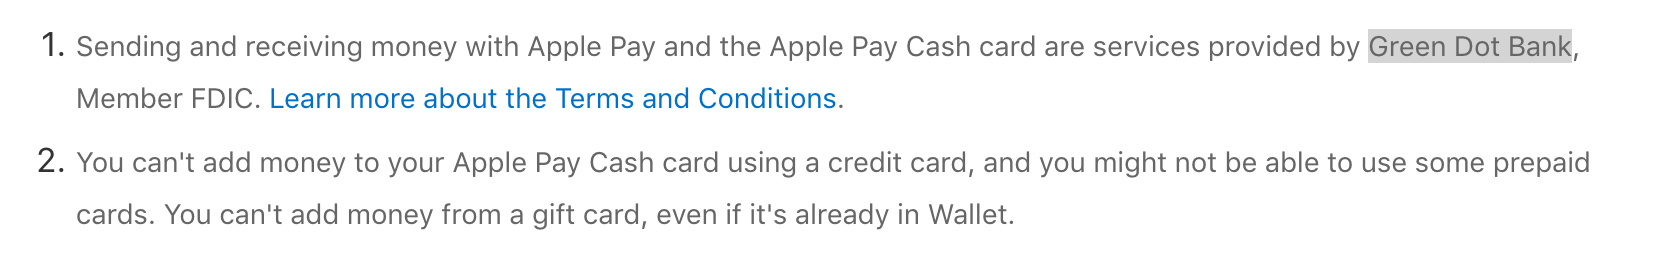 Apple Pay Cash Abroad - Christopher Guess - Medium